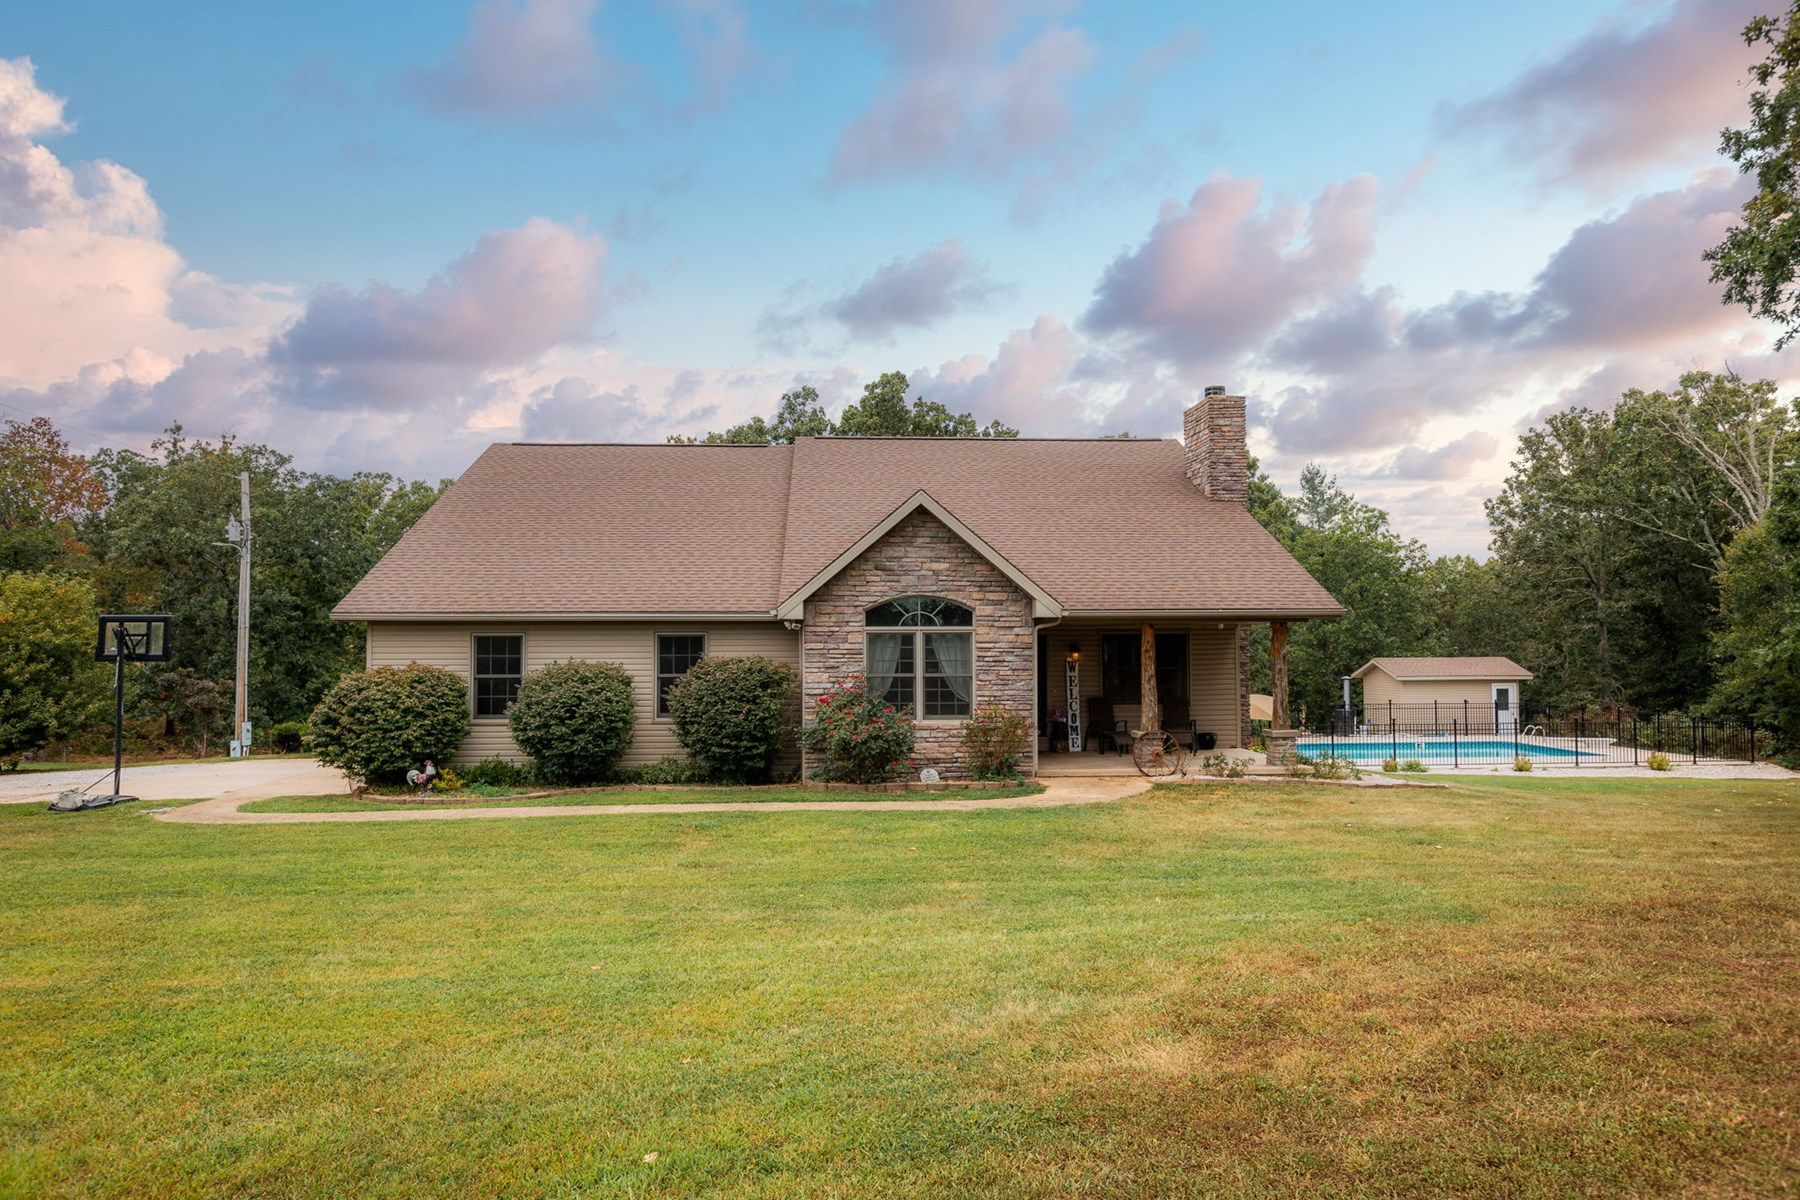 3 bedroom home on 66 acres with heated in ground pool